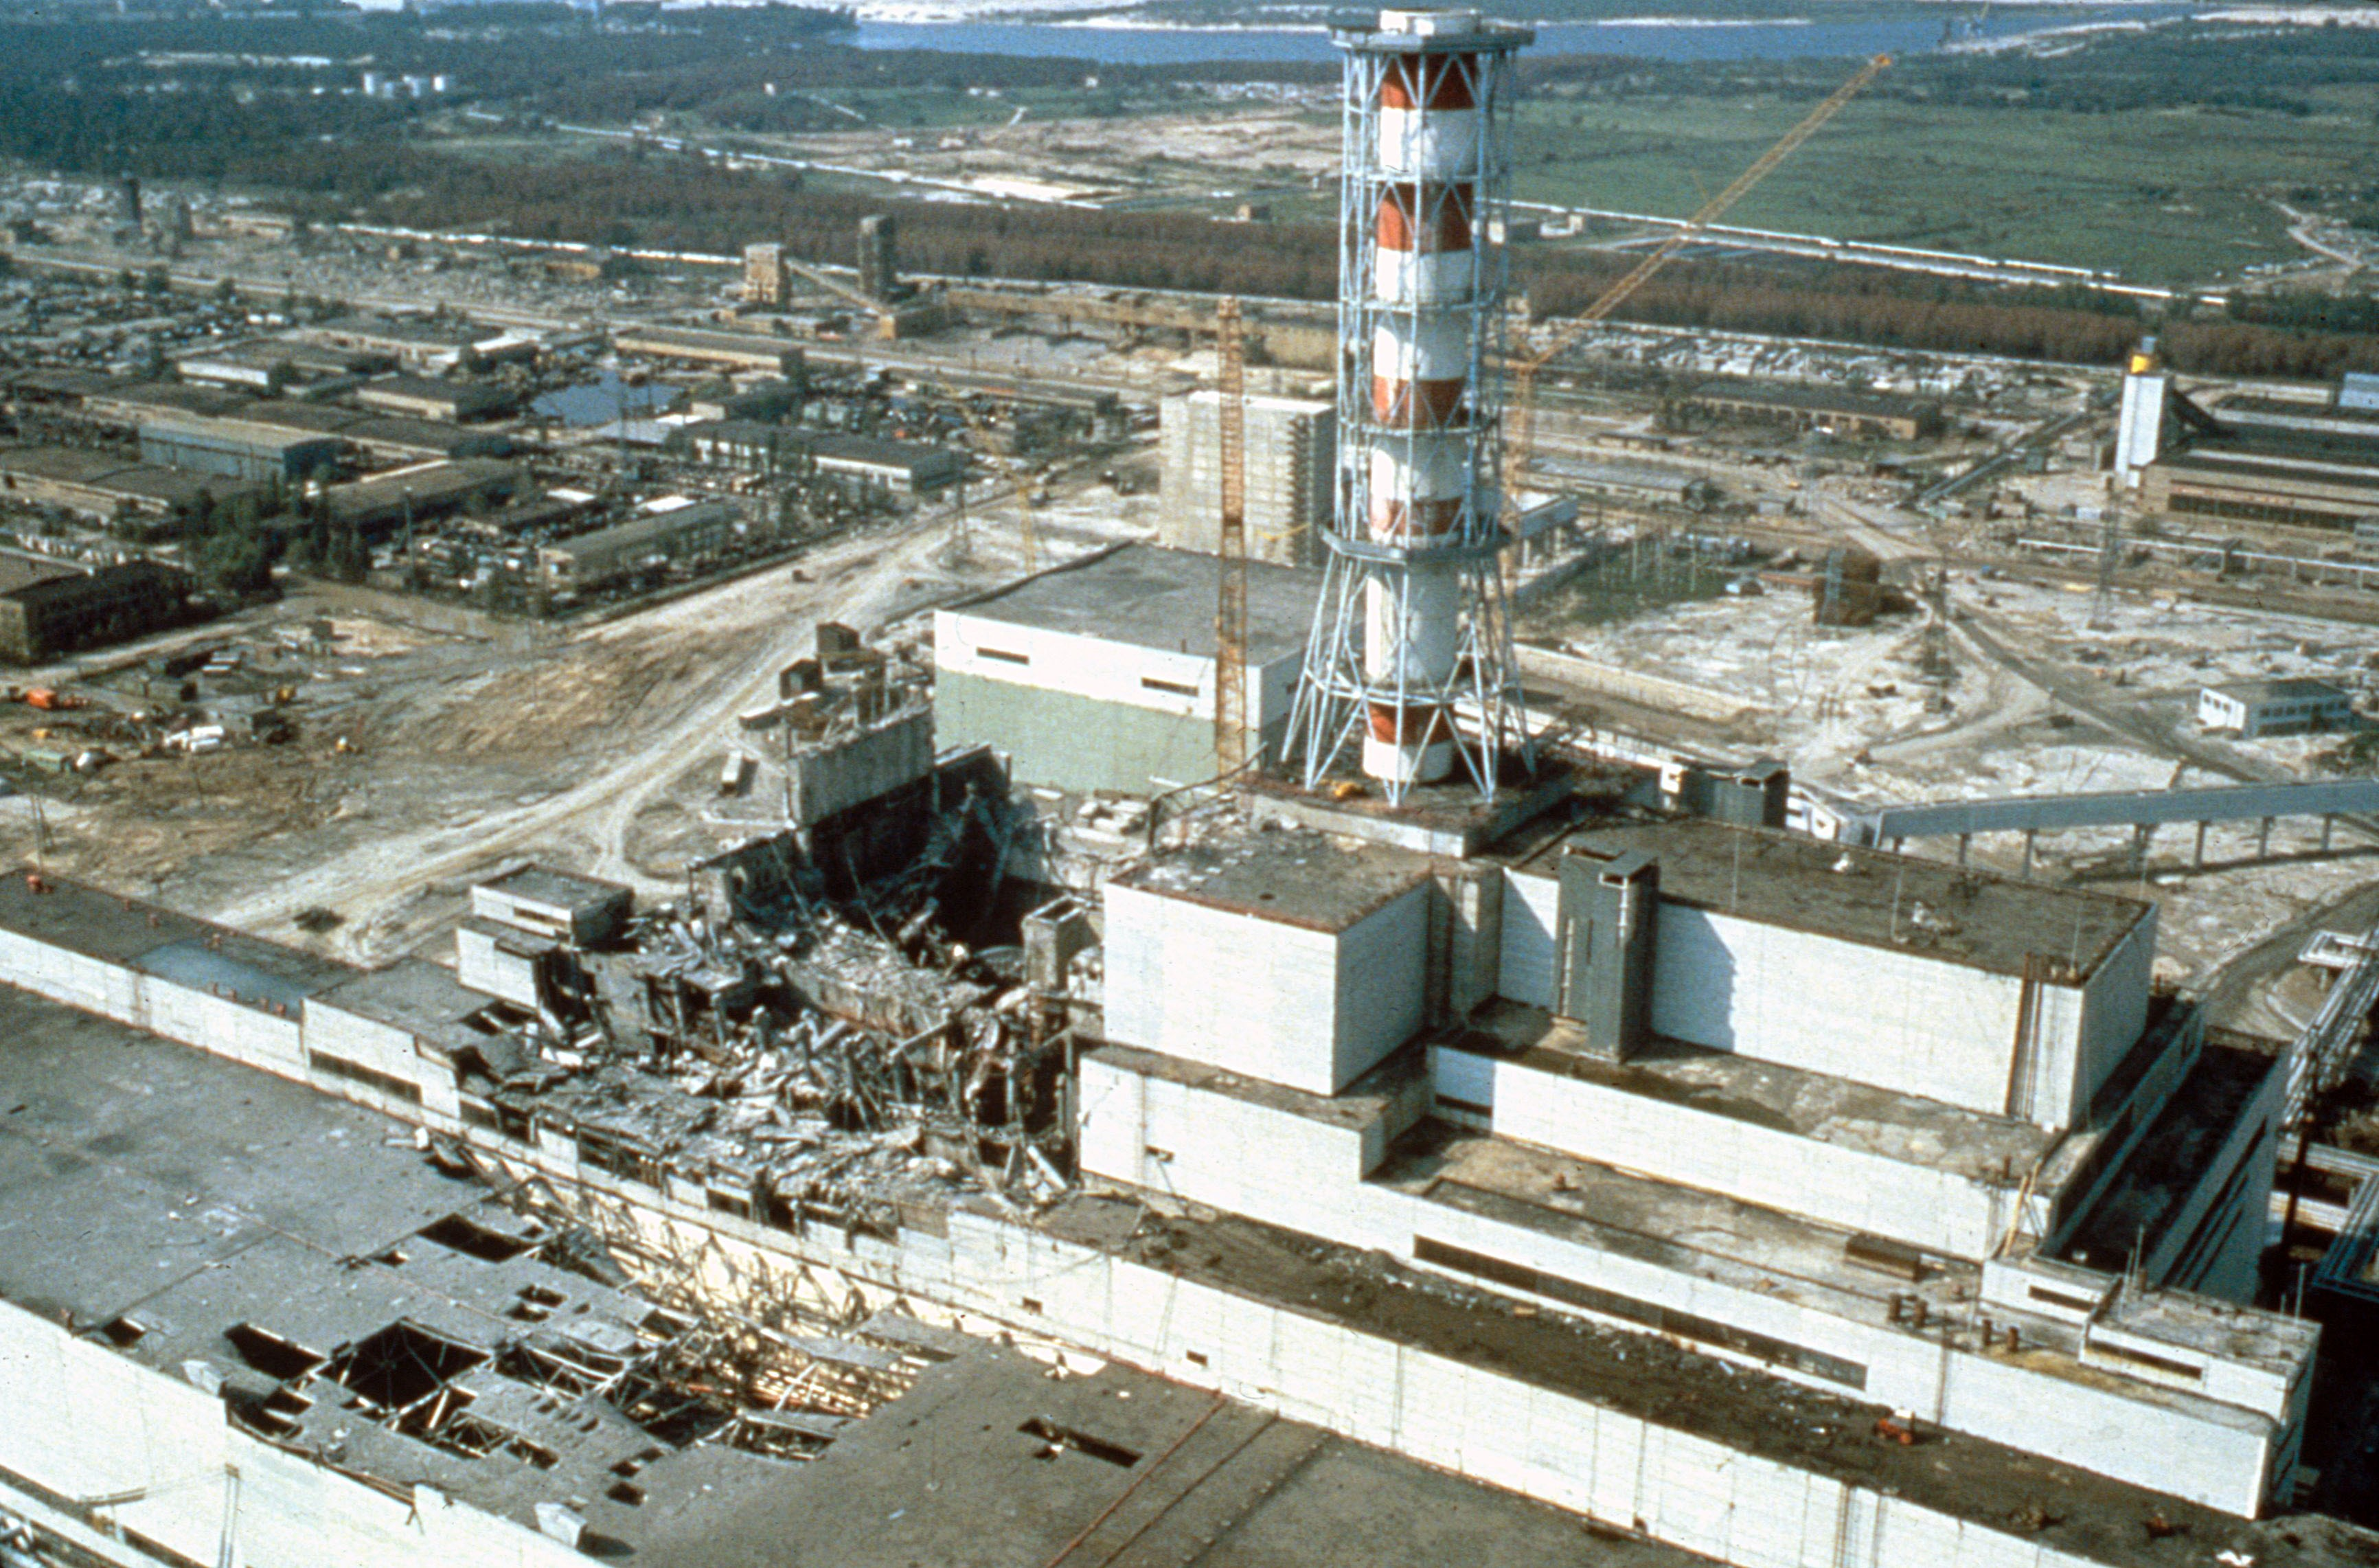 chernobyl nuclear power plant accident The chernobyl disaster was a nuclear accident that occurred on 26 april 1986 at the chernobyl nuclear power plant in the ukrainian soviet socialist republic (then part of the soviet union), now in ukraine.